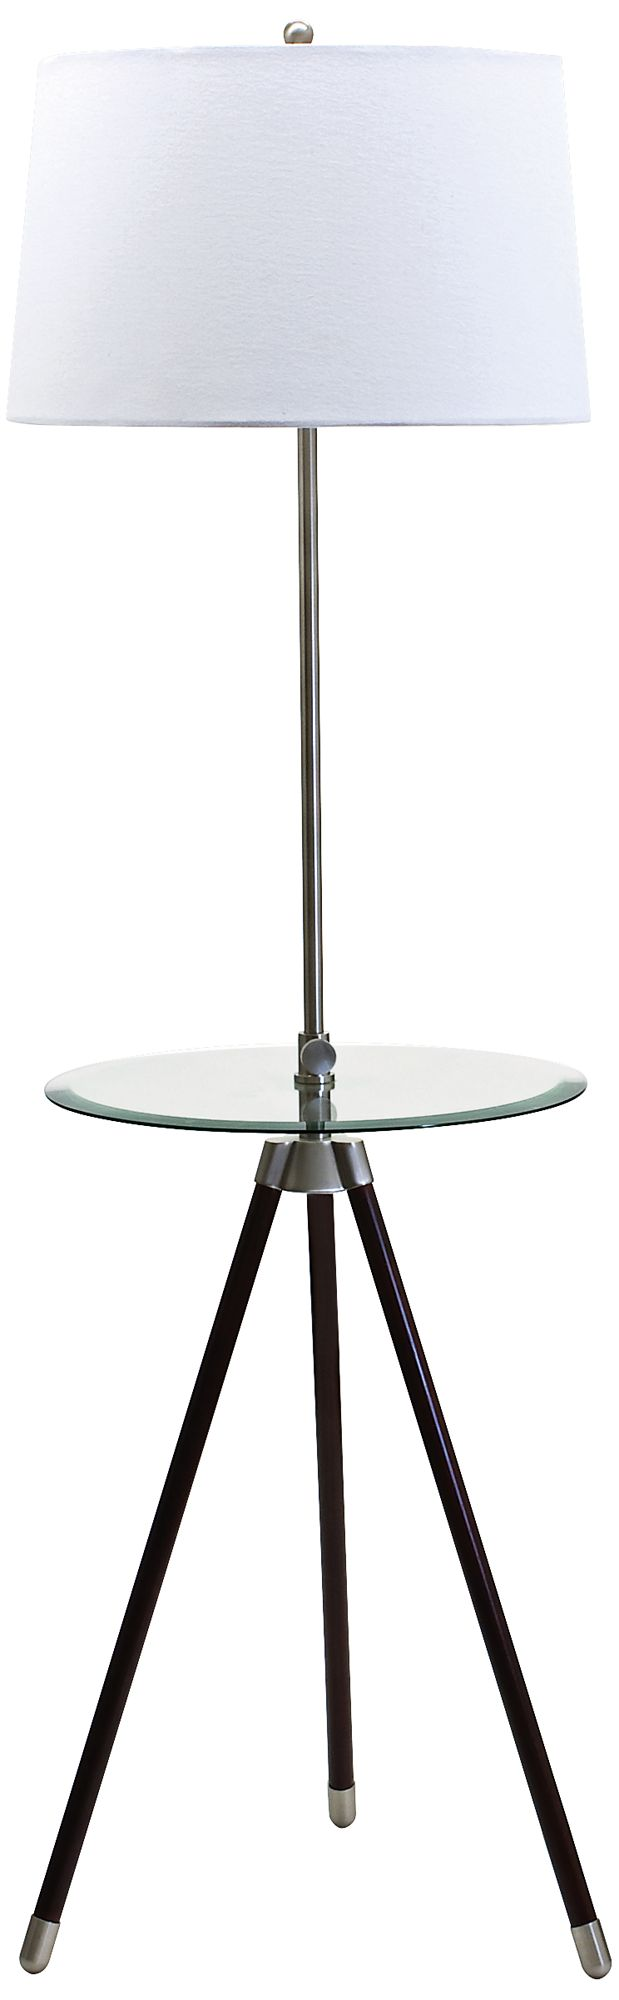 house of troy satin nickel tripod floor lamp with table